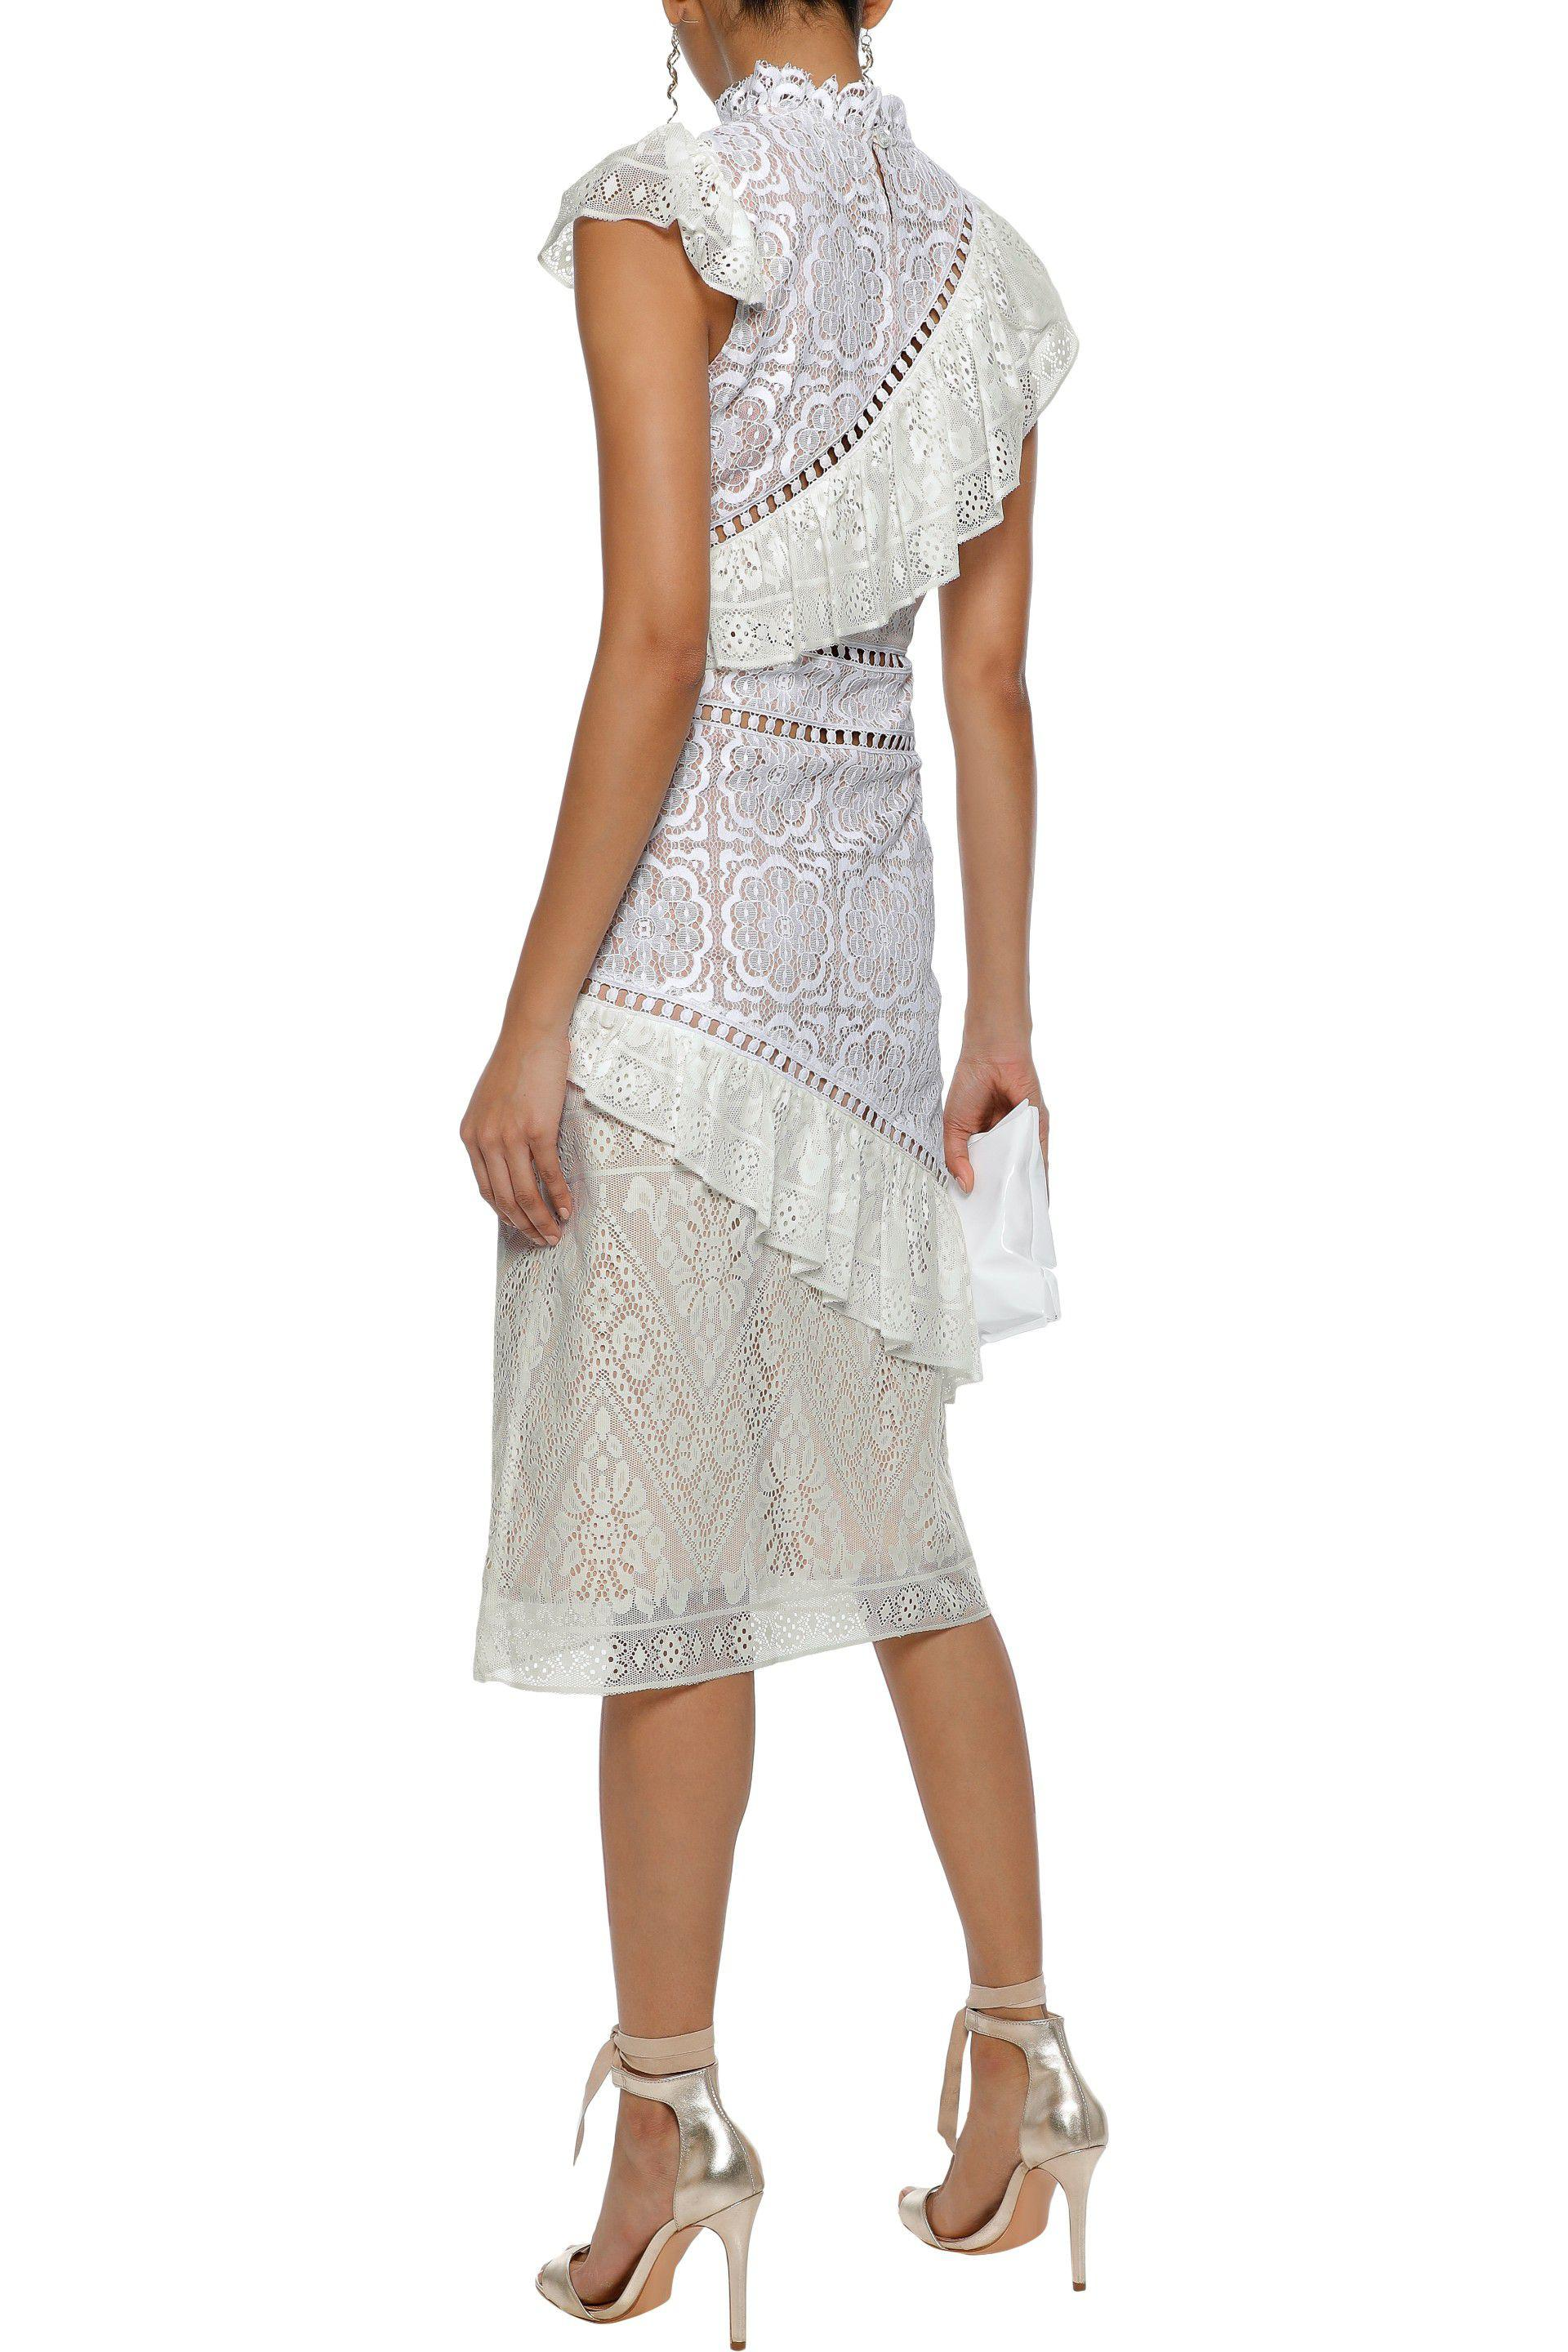 Lace-trimmed Broderie Anglaise Cotton Midi Dress - White Sea New York Cheap Outlet Locations New Lower Prices lxJ2Kn